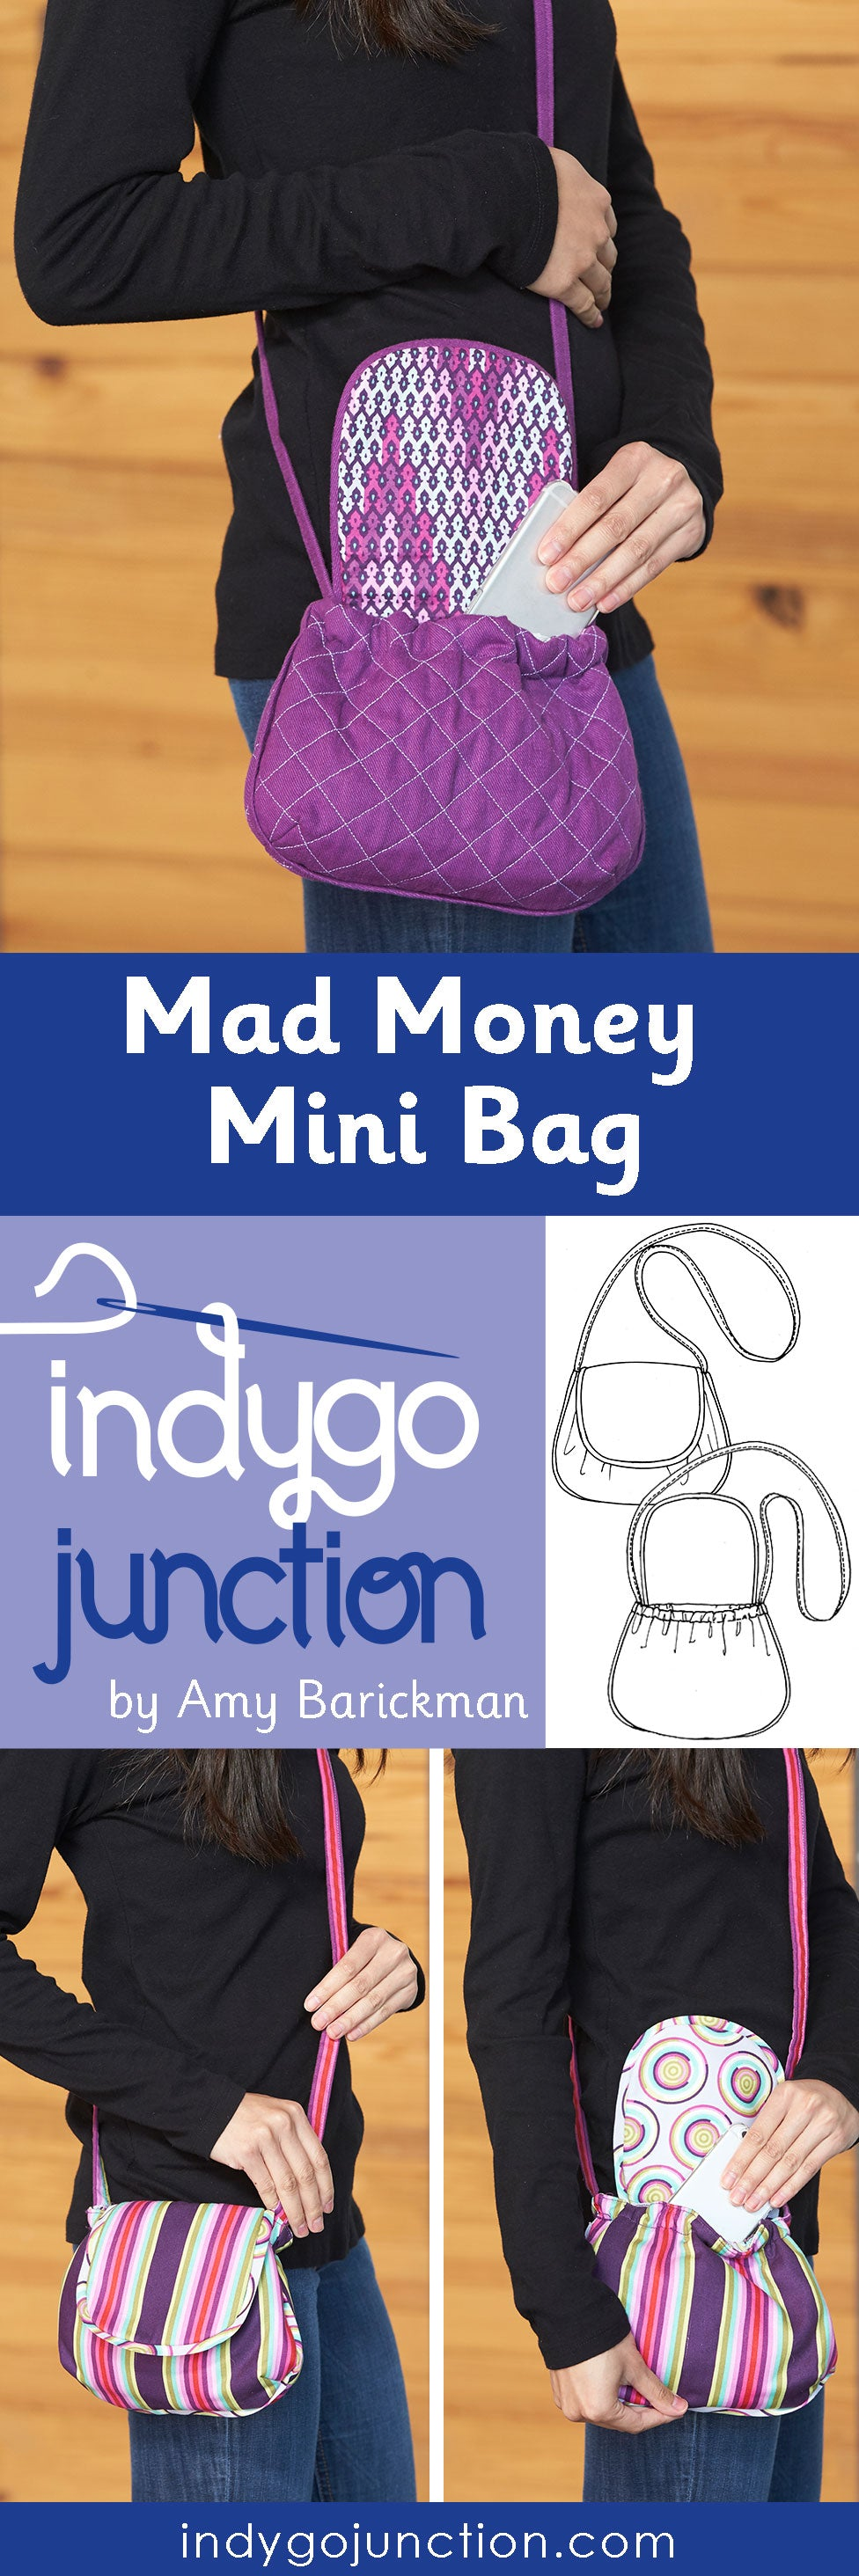 Indygo Junction's Mad Money Mini bag pattern